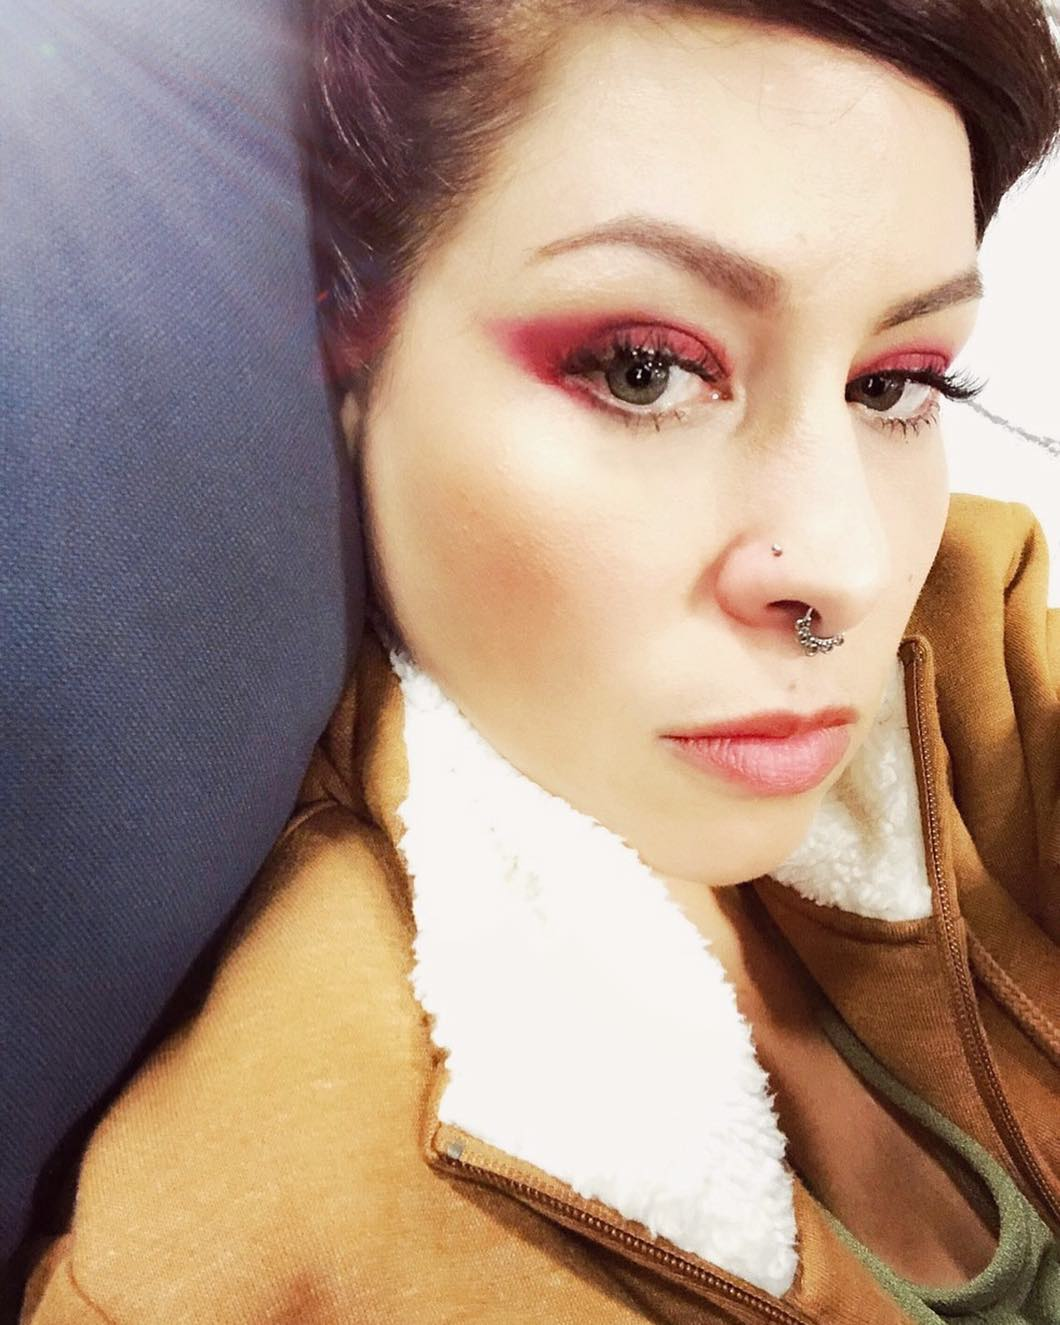 Pitty - 7.out.1977 (Foto: Instagram/@pitty)